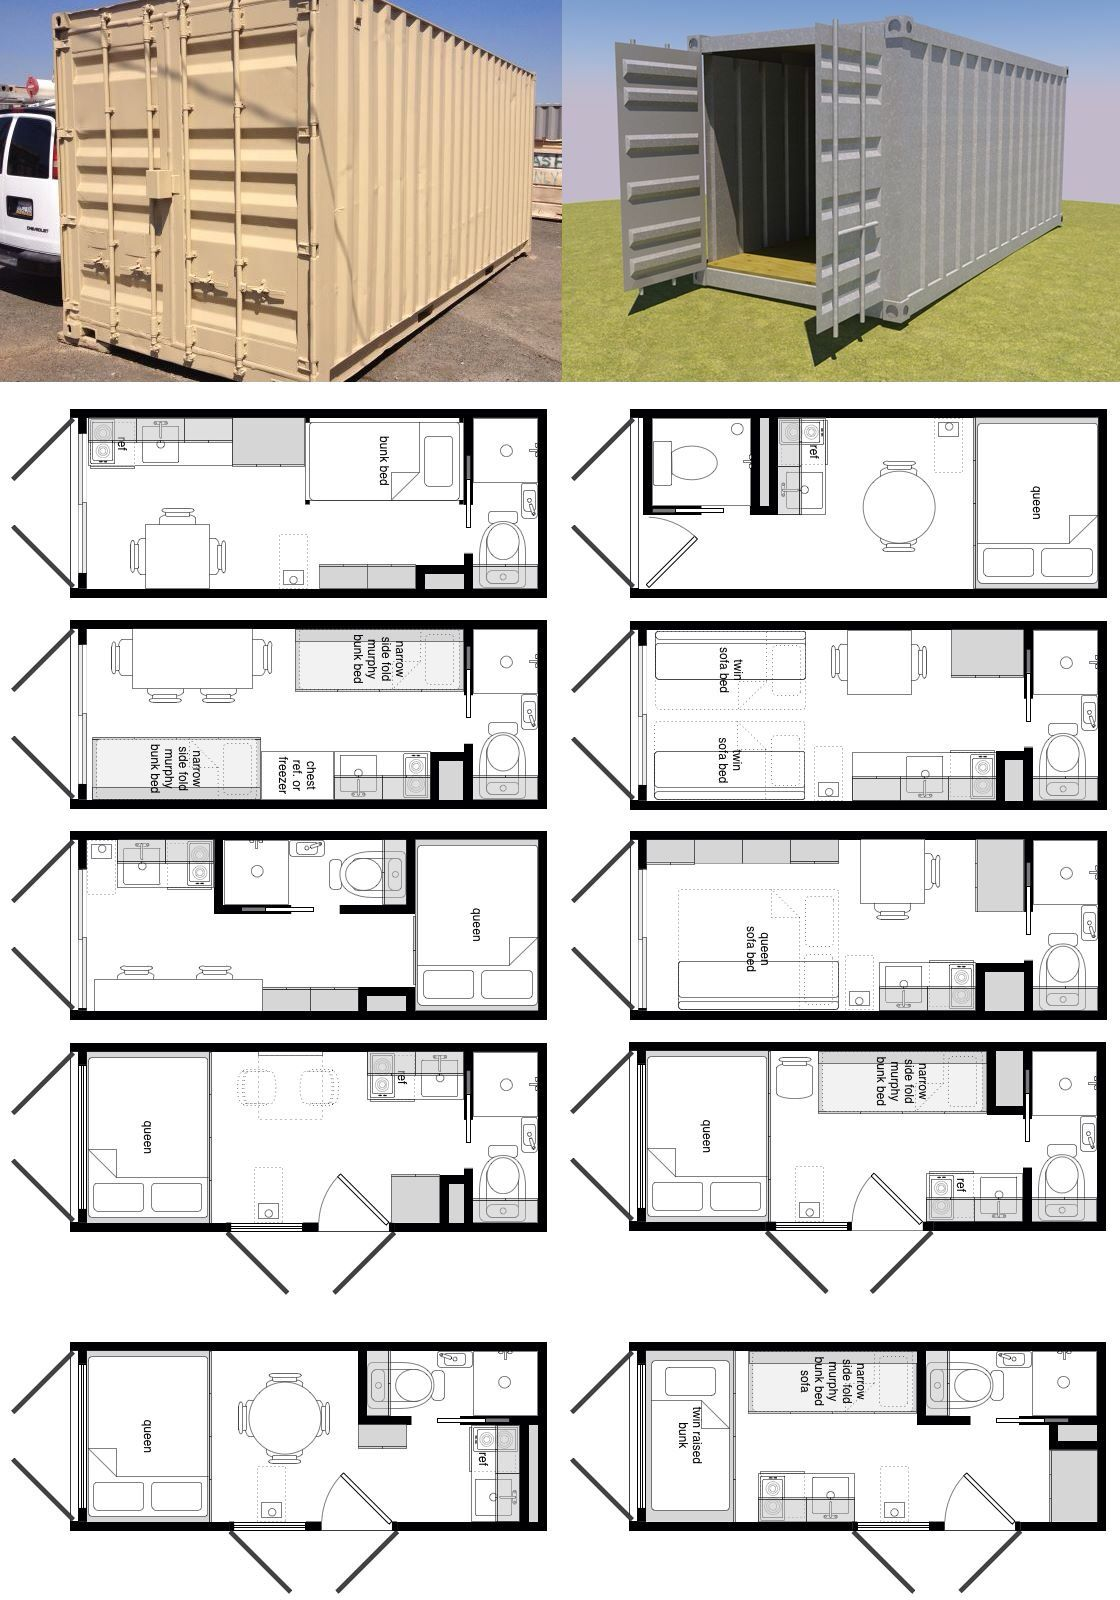 Best Kitchen Gallery: Container Home Floor Plans This Would Make Quite The Conversation of Storage Container Shotgun Home Plans on rachelxblog.com